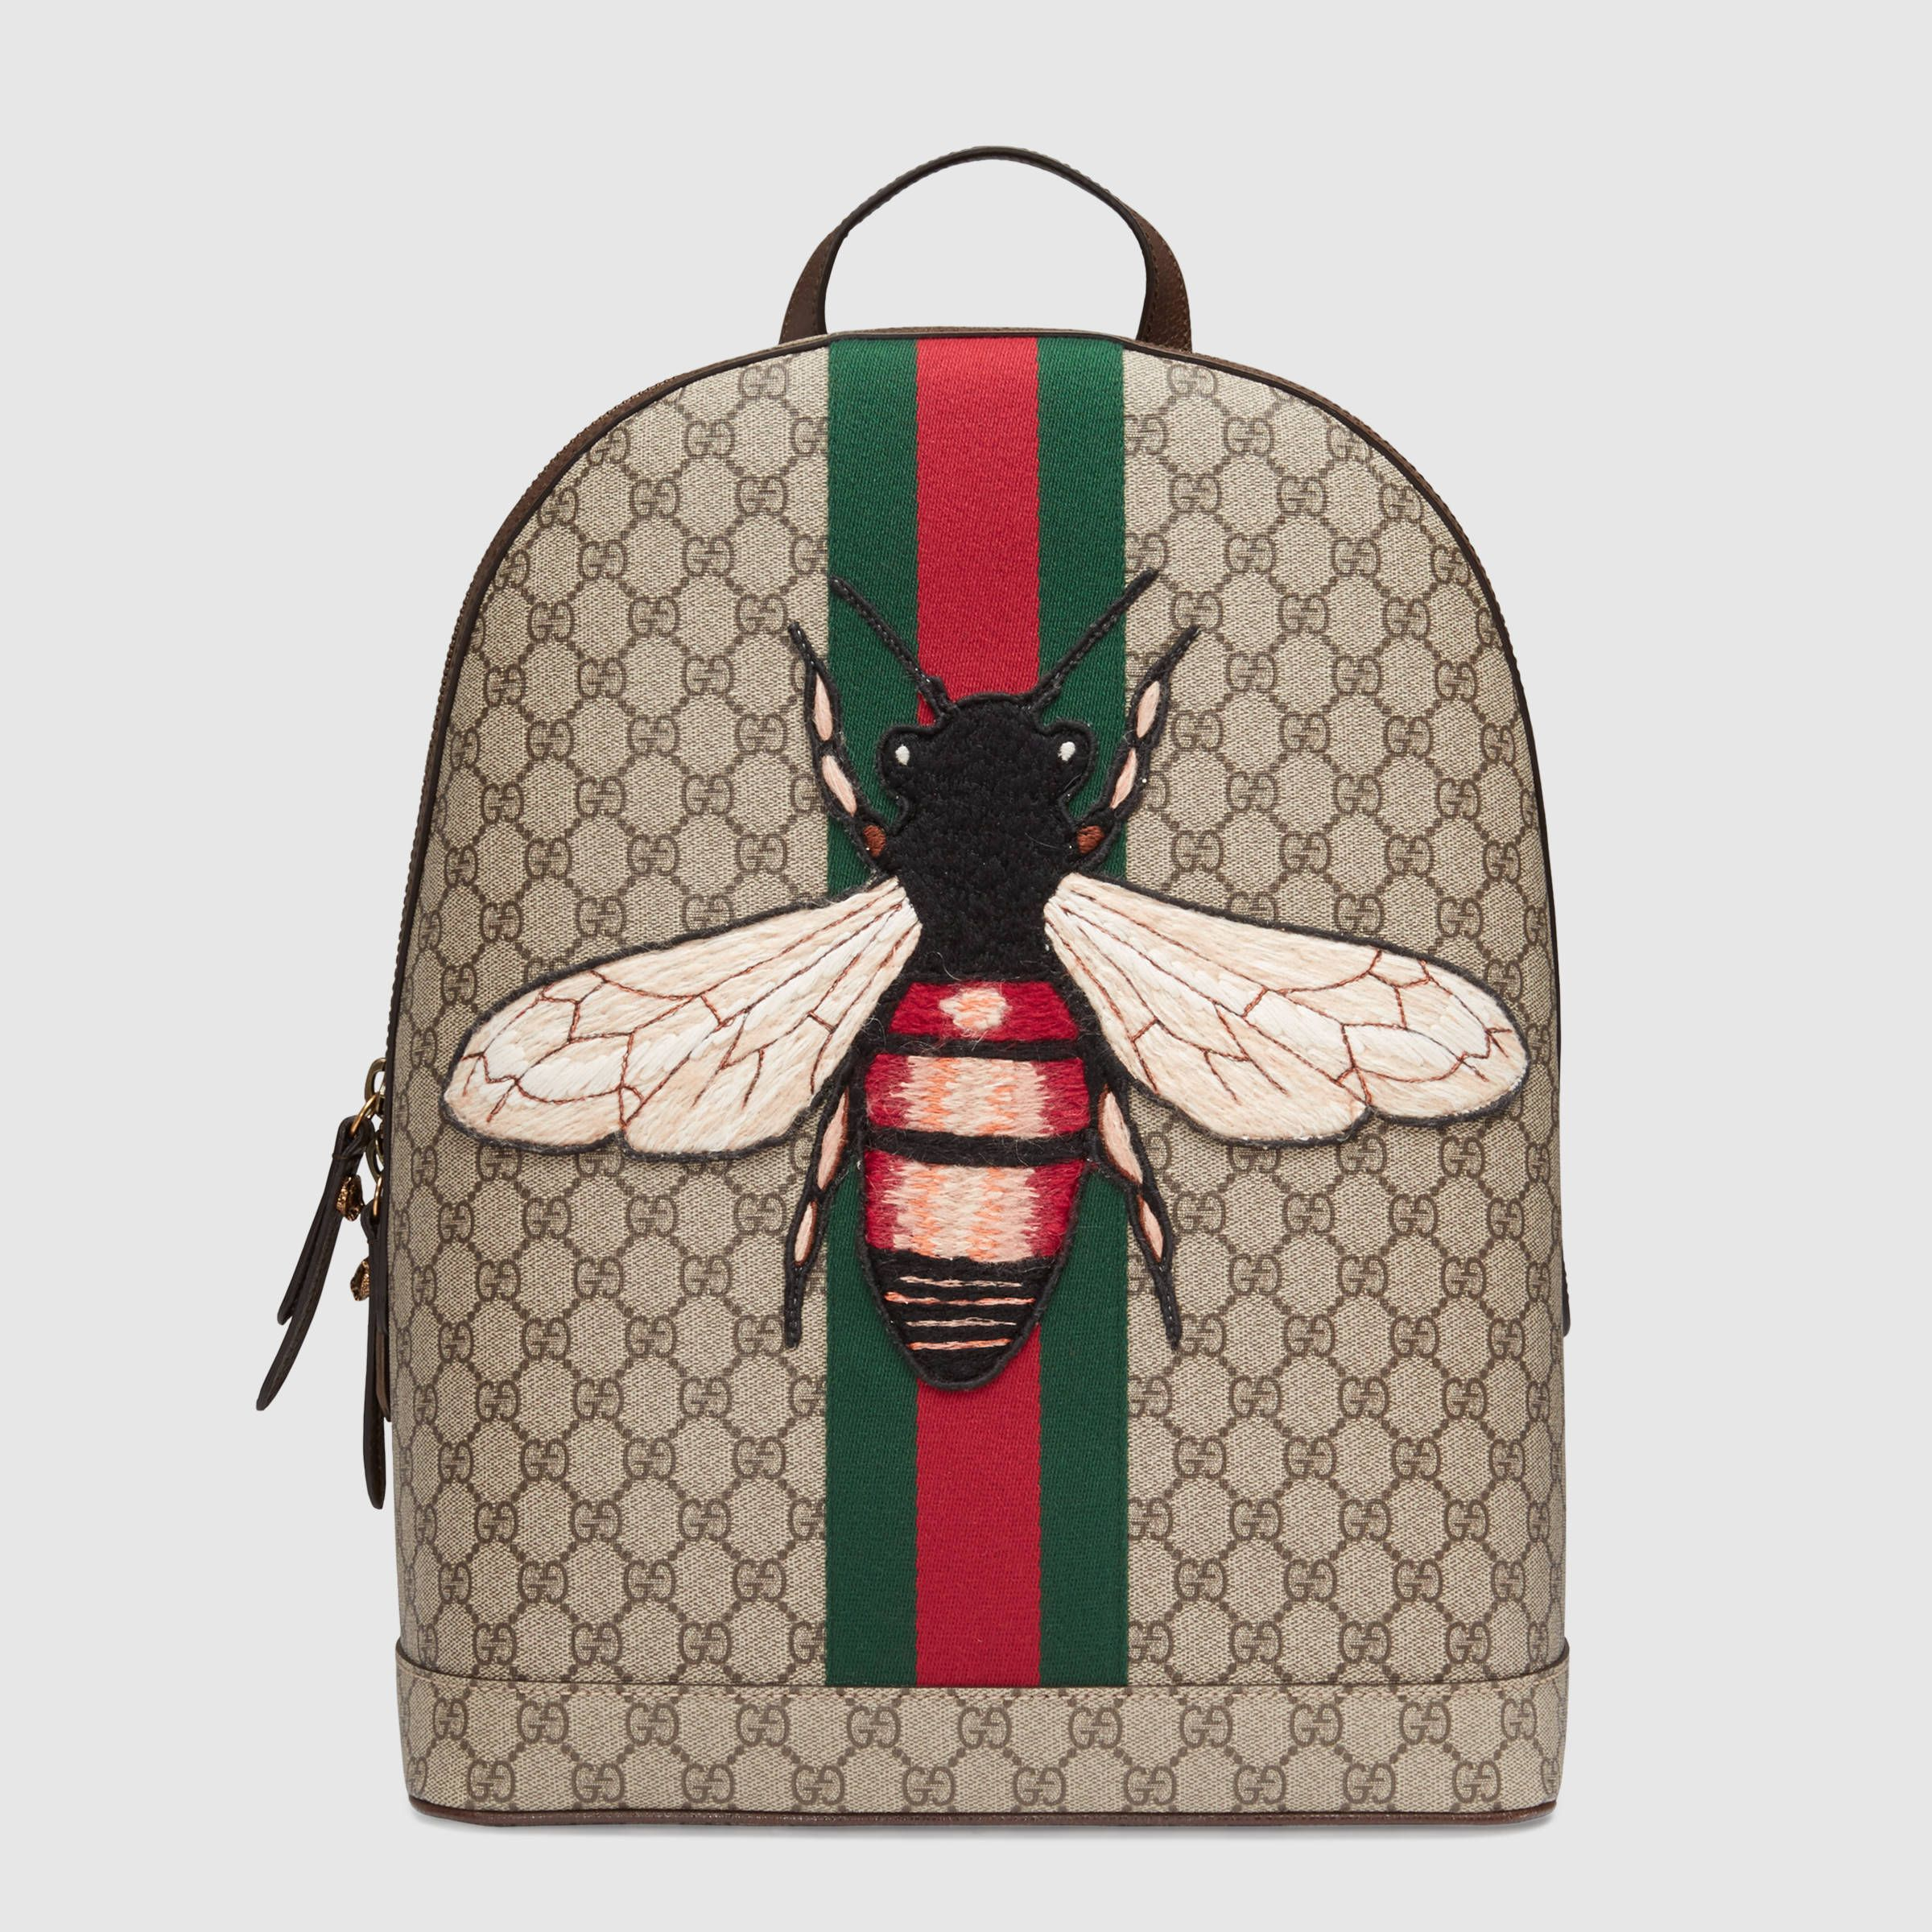 fc4bd1e0028d Gucci. Web Animalier backpack with bee - 442892K2LZT8968 | Bling ...